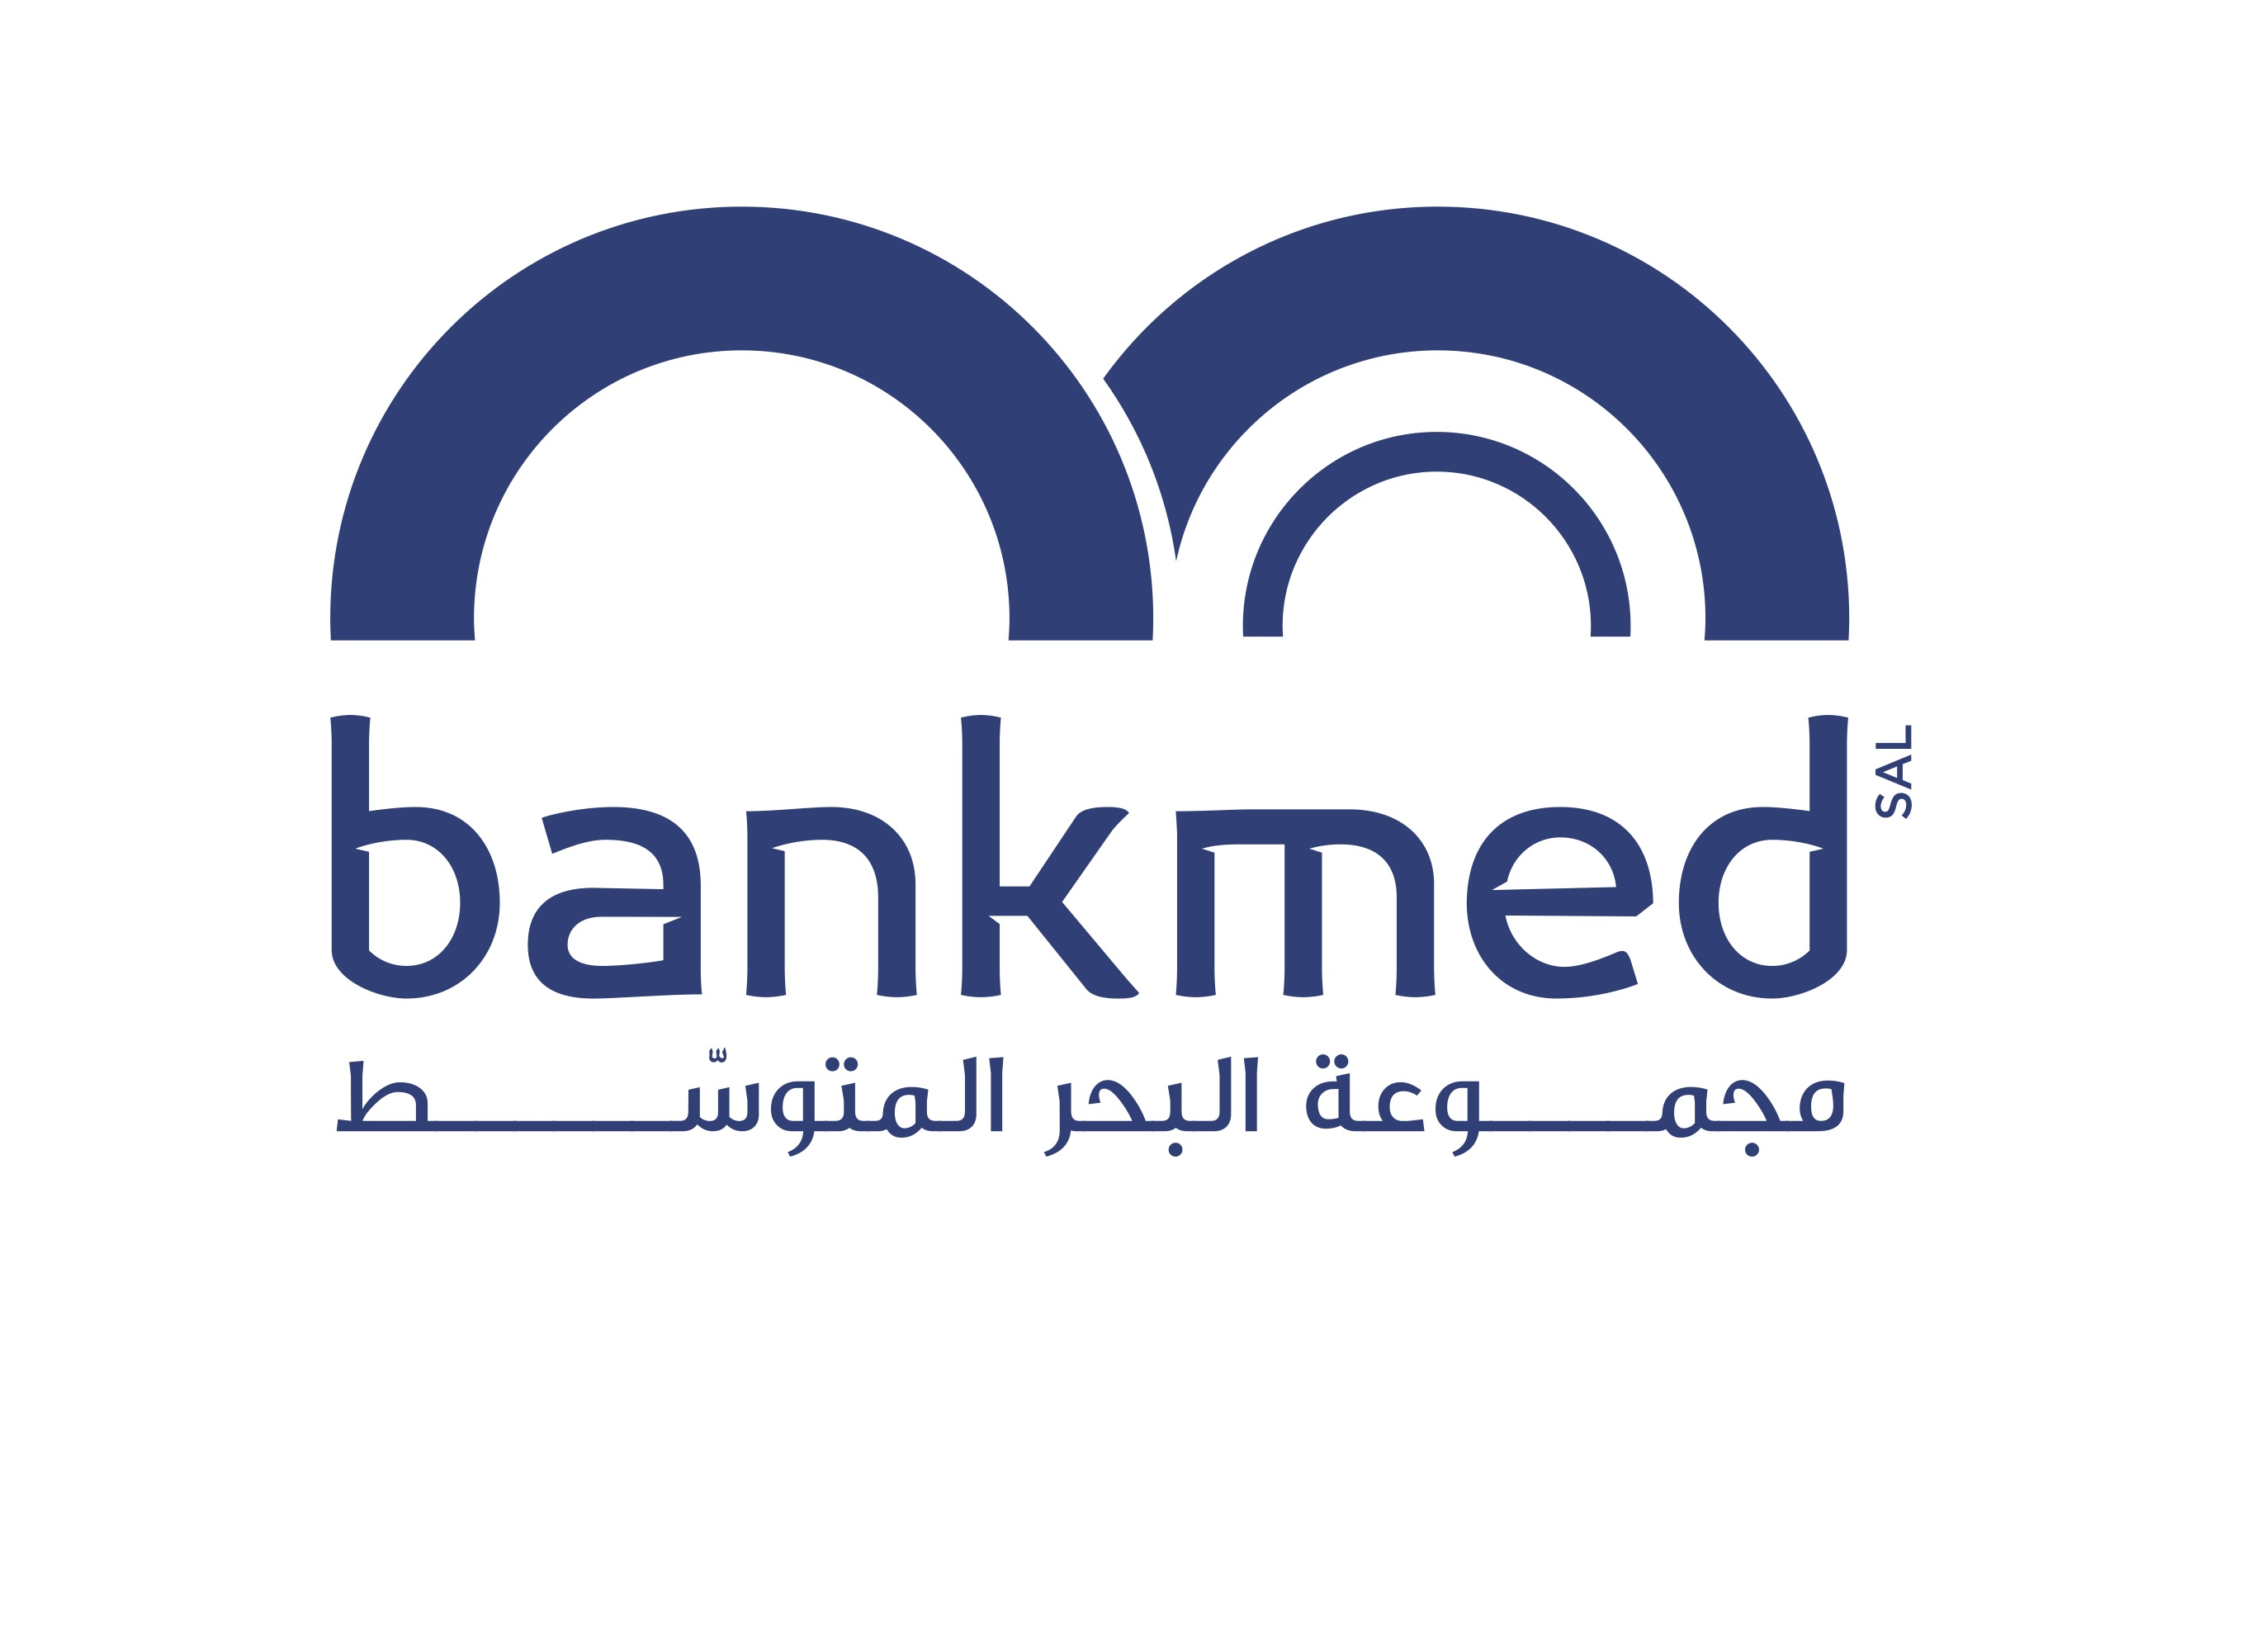 Bankmed - Housing Loan in USD